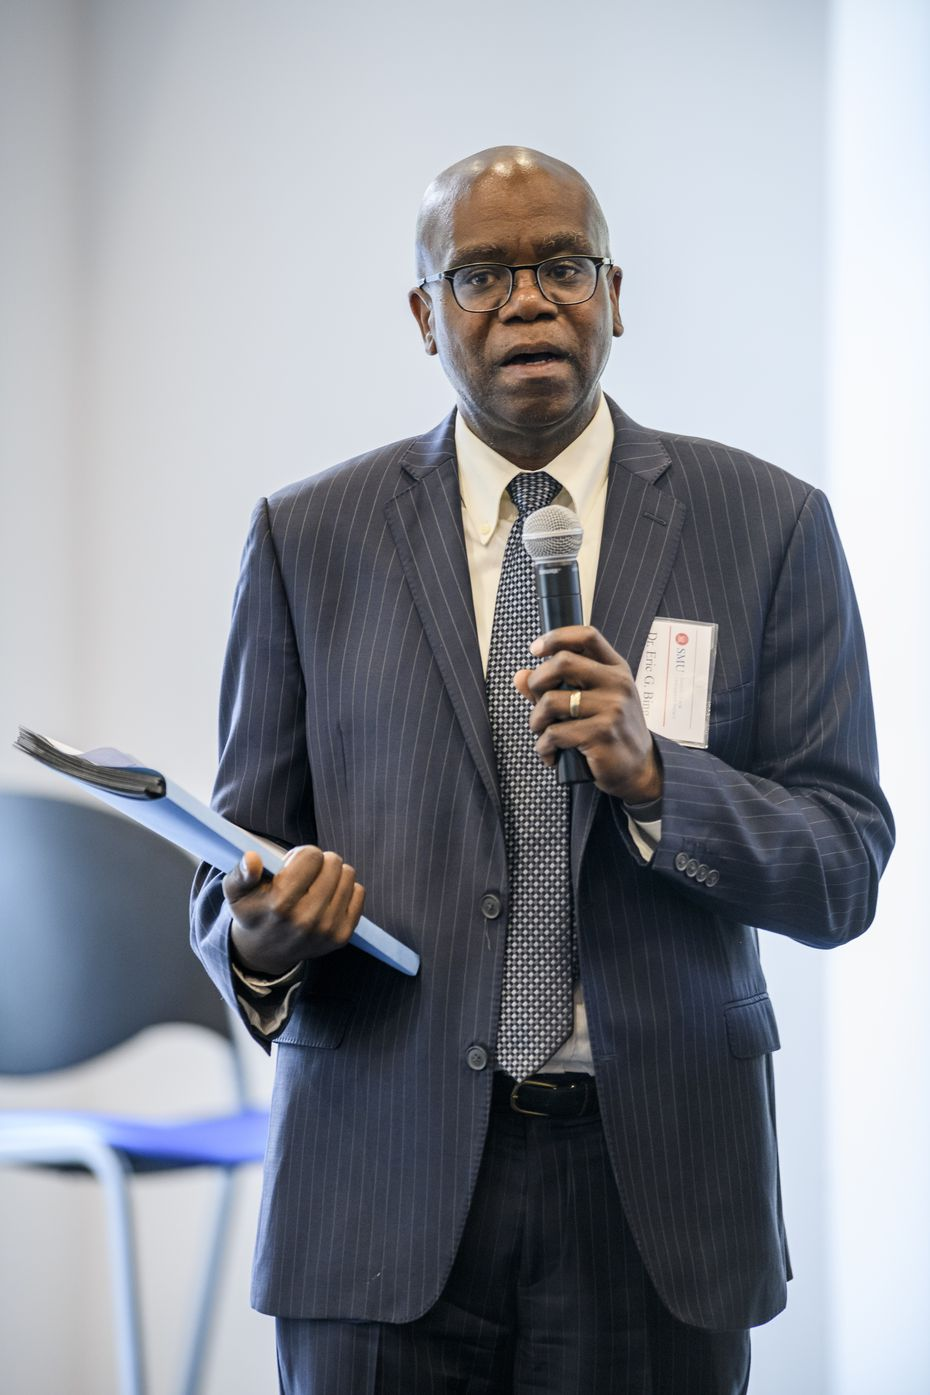 Dr. Eric Bing, a global health expert, at the Rural Superintendent Leadership Symposium at Harold Clark Simmons Hall on Wednesday, May 15, 2019 on the SMU Campus in Dallas, Texas. Bing and Beeson helped the Dallas Theater Center and SMU Meadows with their reopening plans.